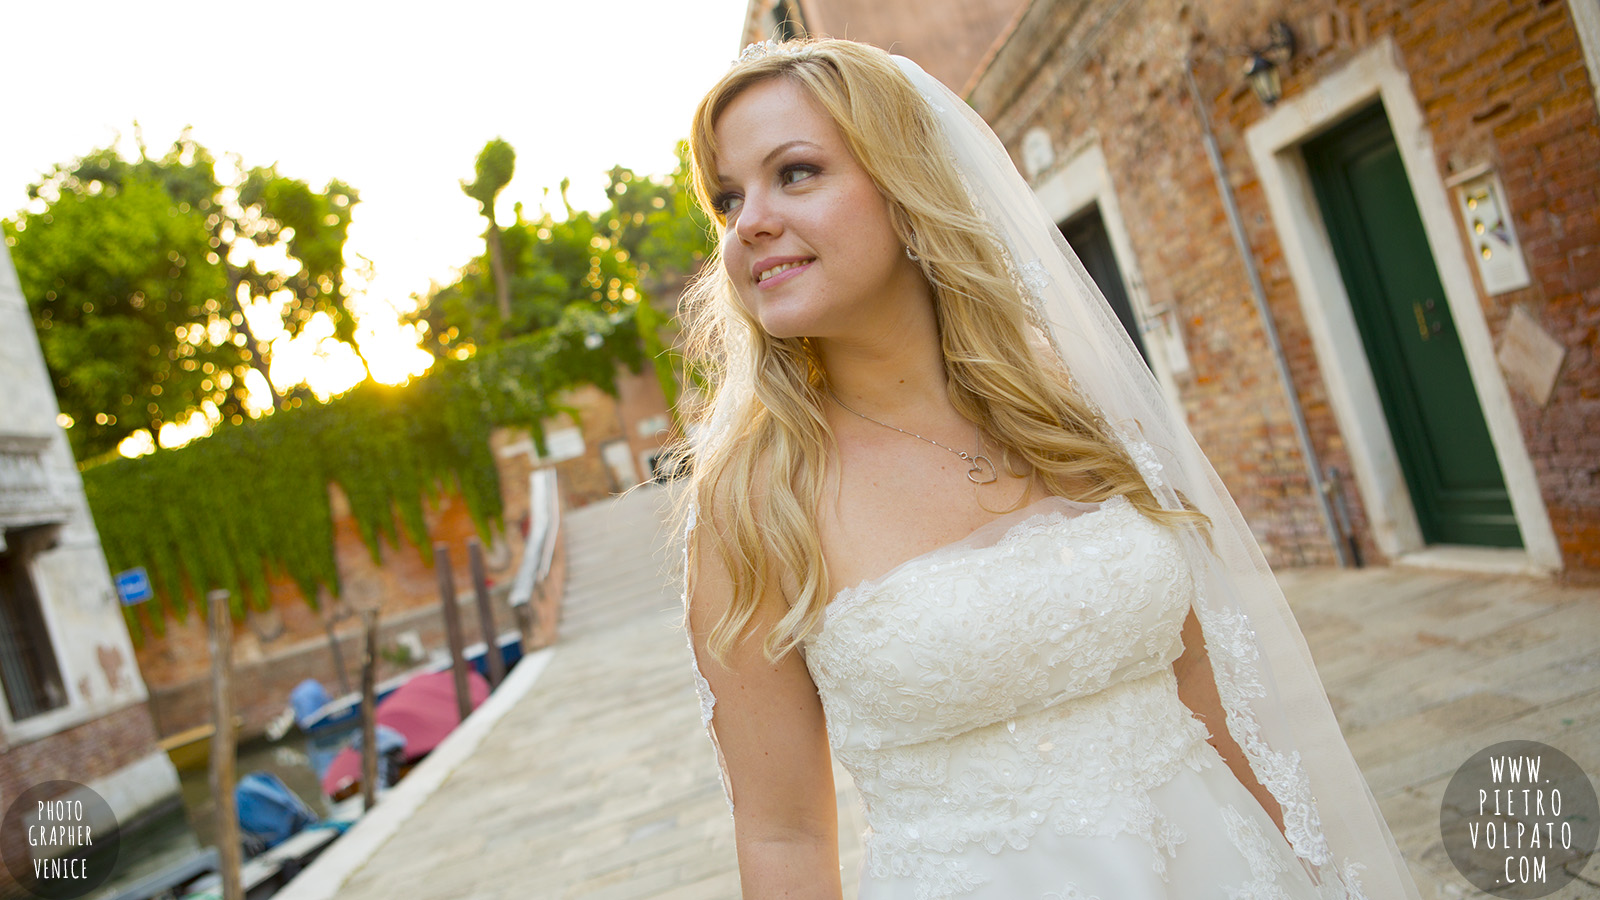 photographer in venice italy for wedding honeymoon photo shoot about walking tour and gondola ride